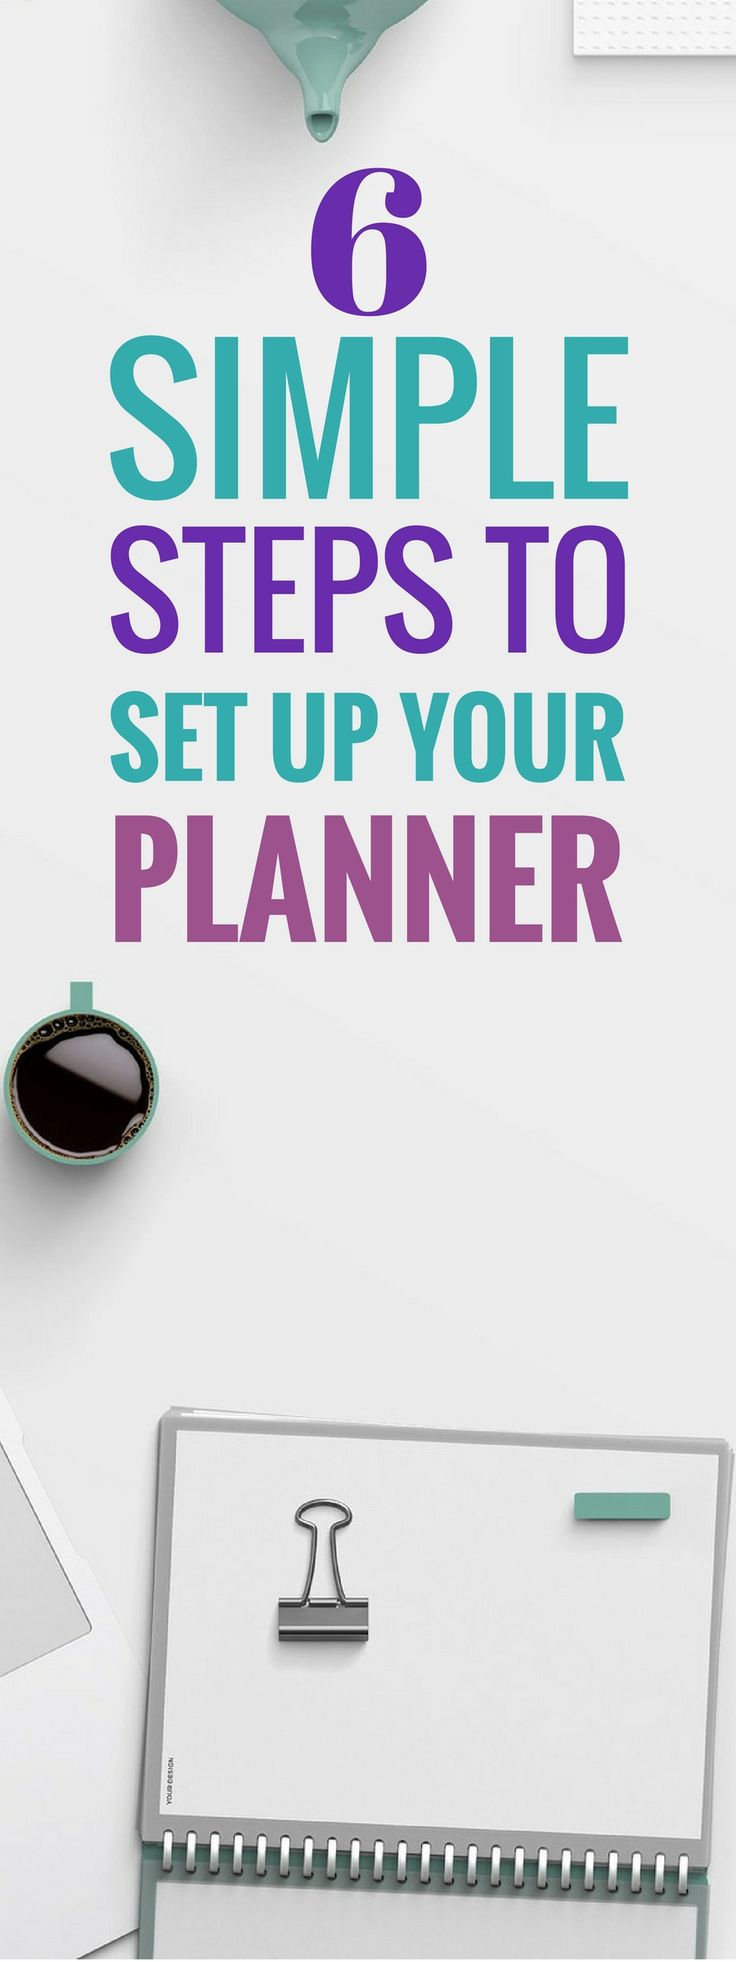 These 5 planner set up ideas are THE BEST! I'm so glad I found these awesome ideas to set up my planner. Now I can be organized for the news year and beyond and I can finally acheive my goals this year! Pinning for sure! #organize #plannercommunity #planner